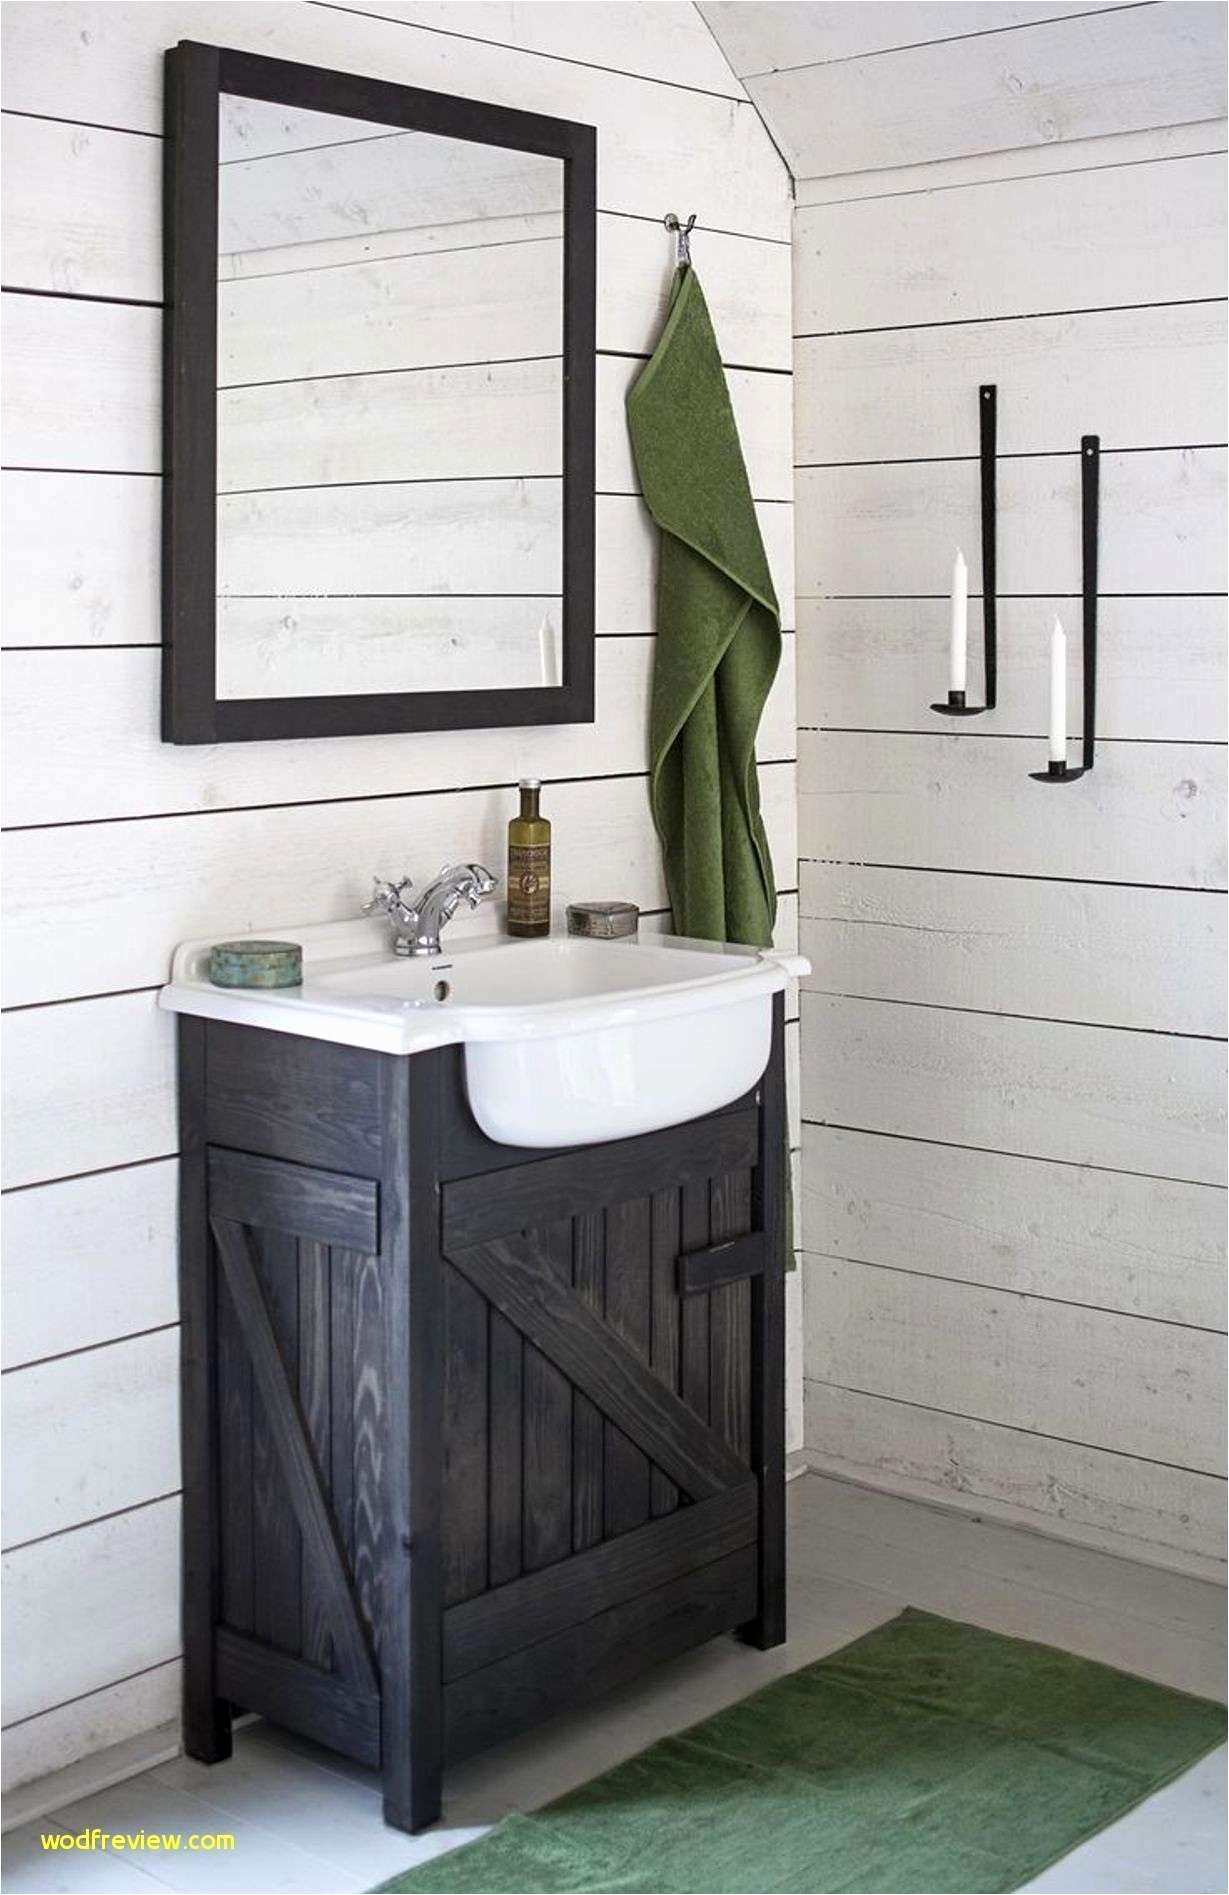 Inspirational Bathroom Picture Ideas Lovely Tag toilet Ideas 0d Best